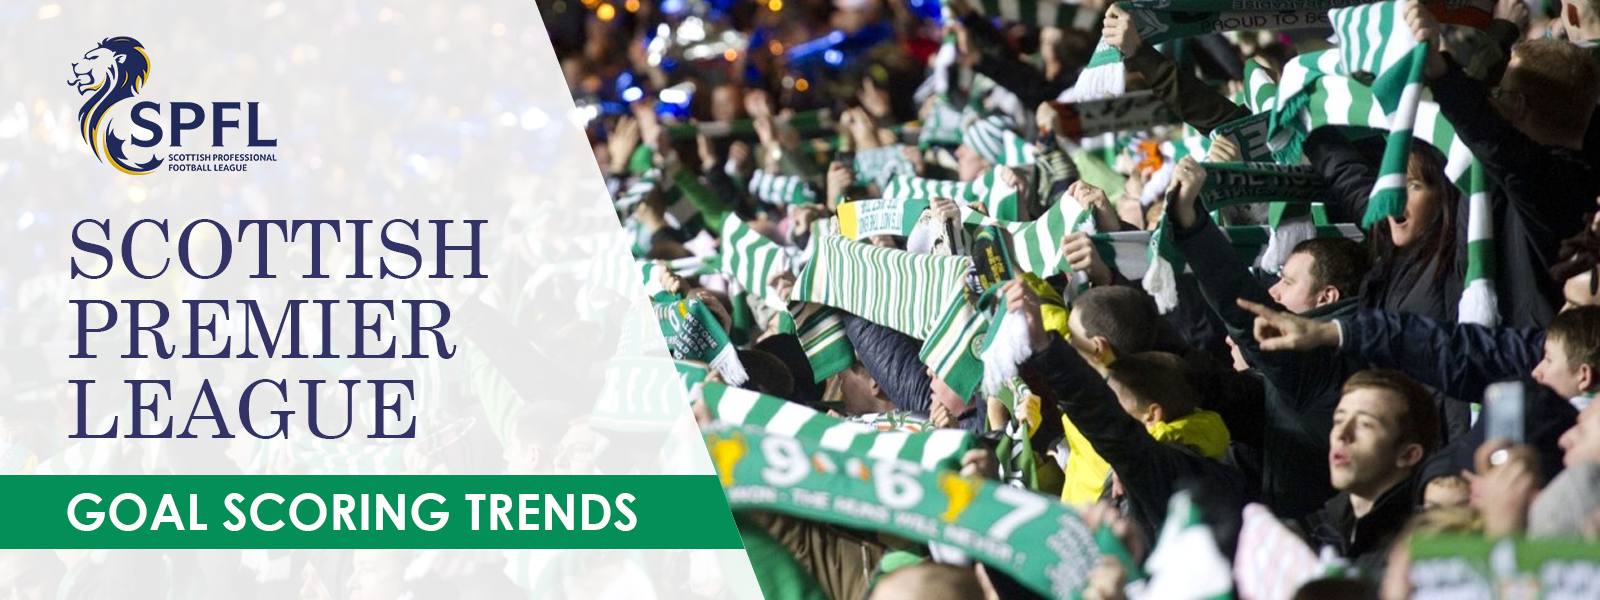 Scottish Premier League Goal Scoring Trends (With Betting Predictions)